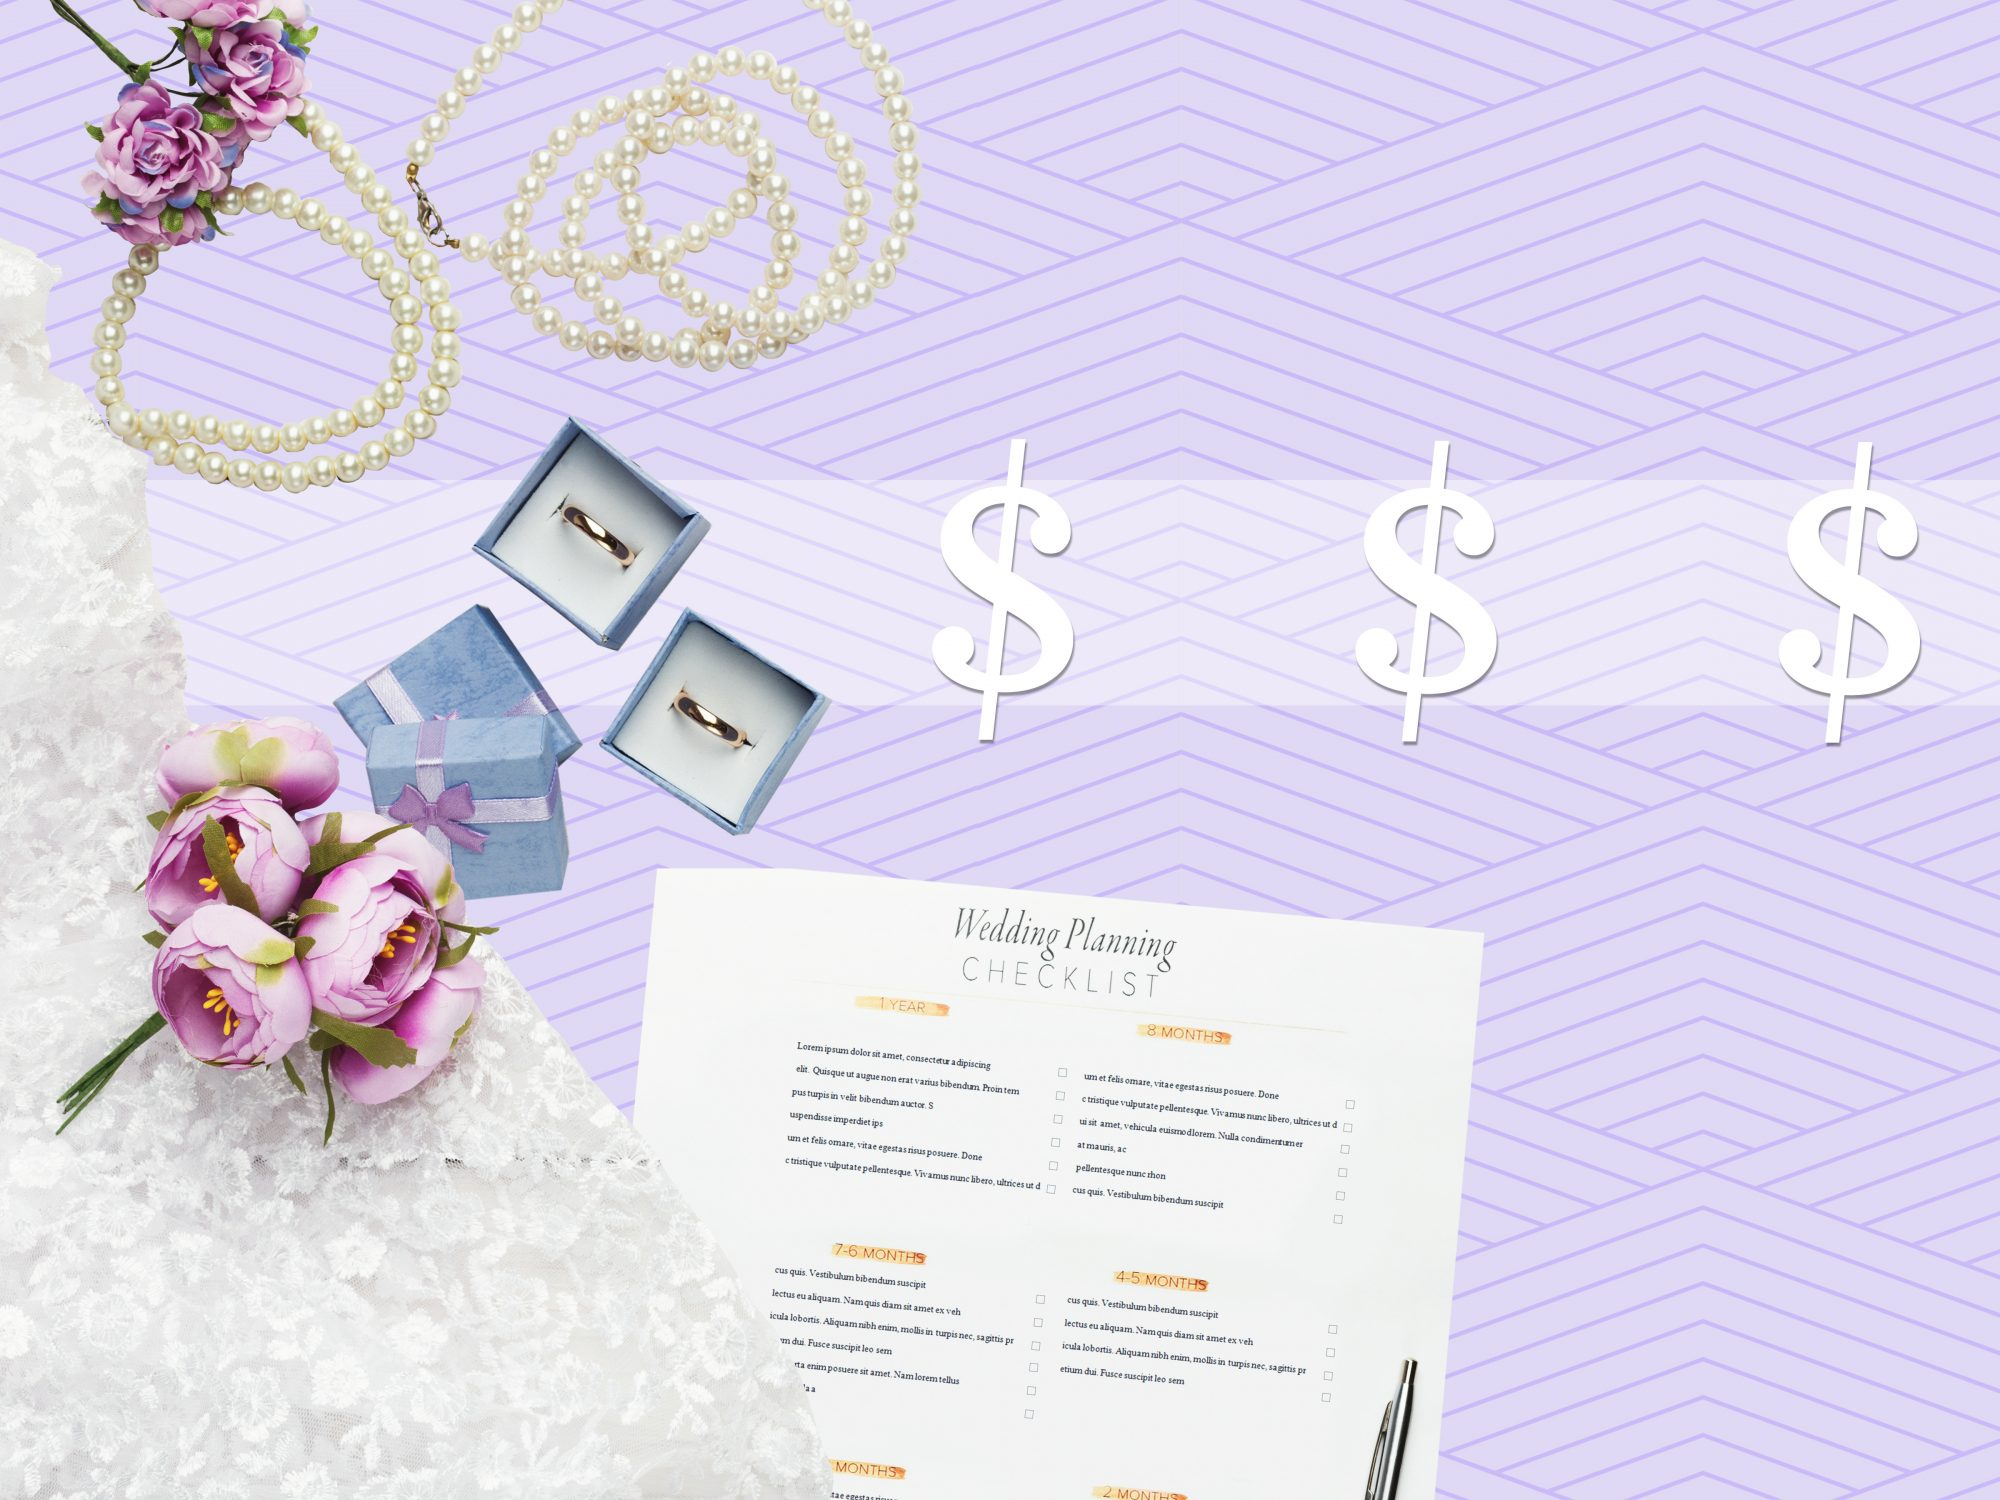 How to save money on a wedding: wedding details on a purple background